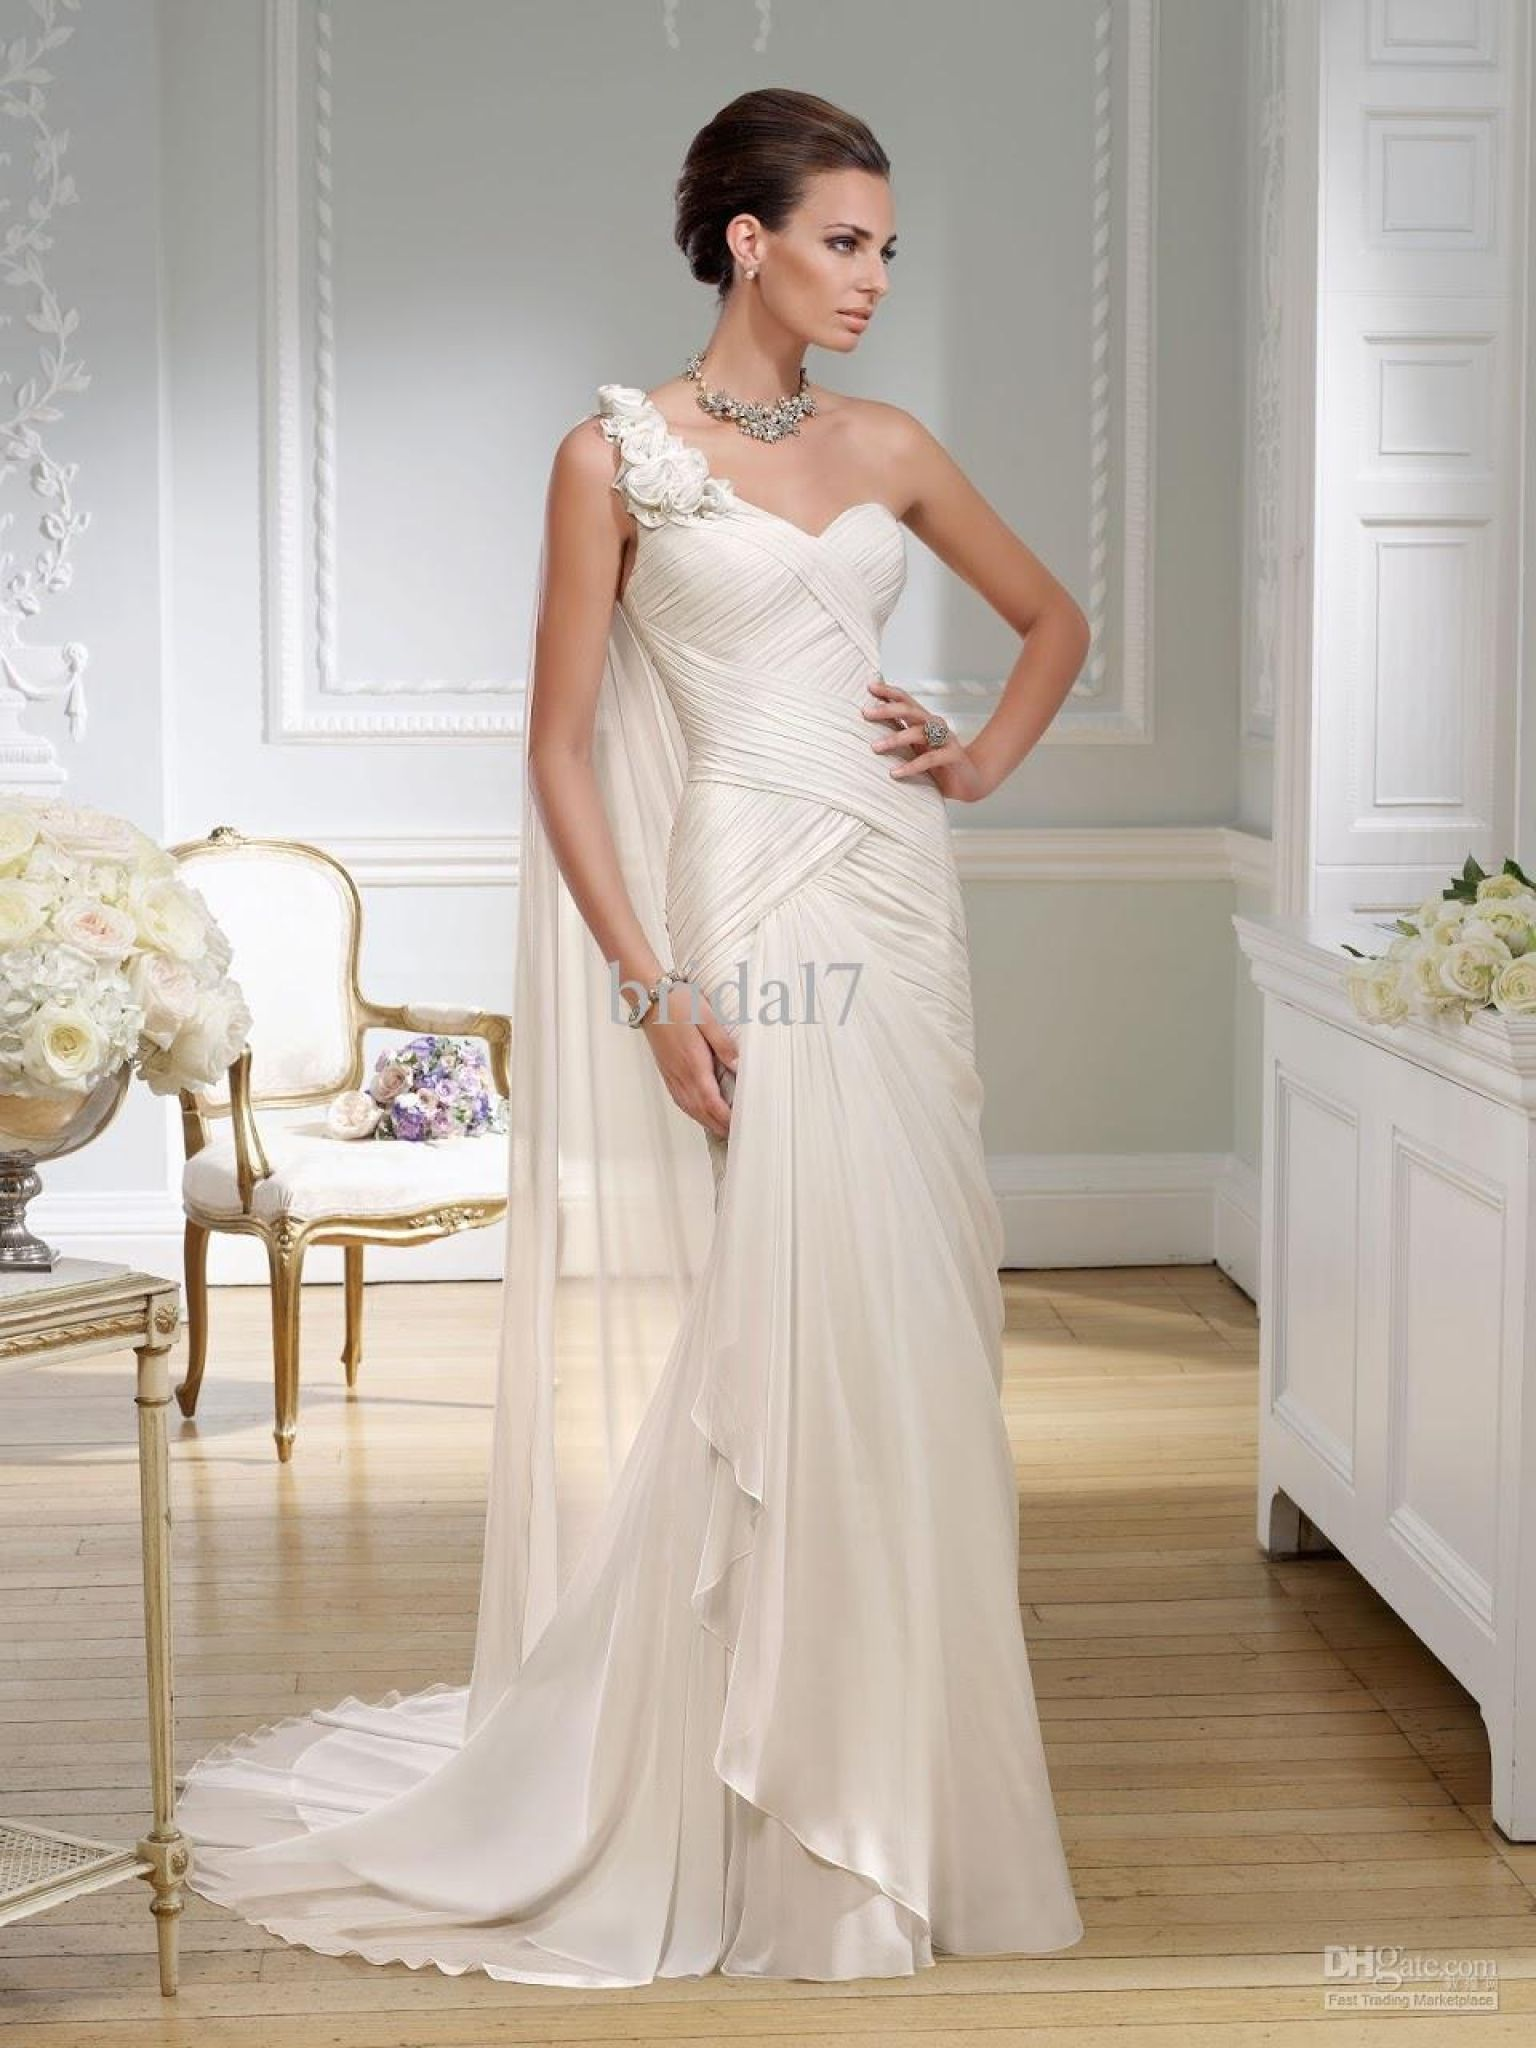 Greek style wedding dresses country dresses for weddings check